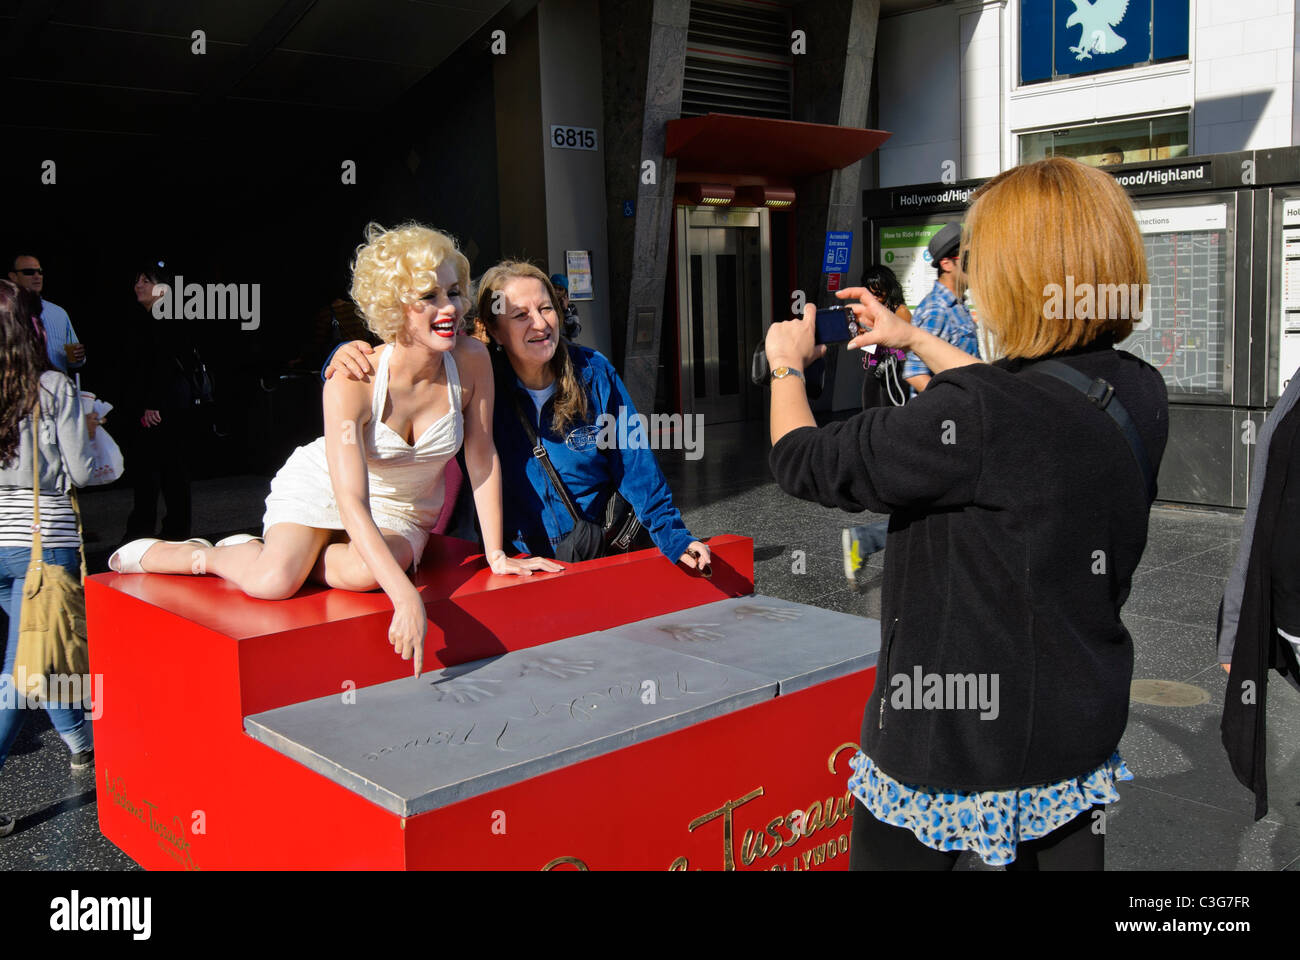 Marilyn Monroe Wax Figure from Madame Tussauds. - Stock Image